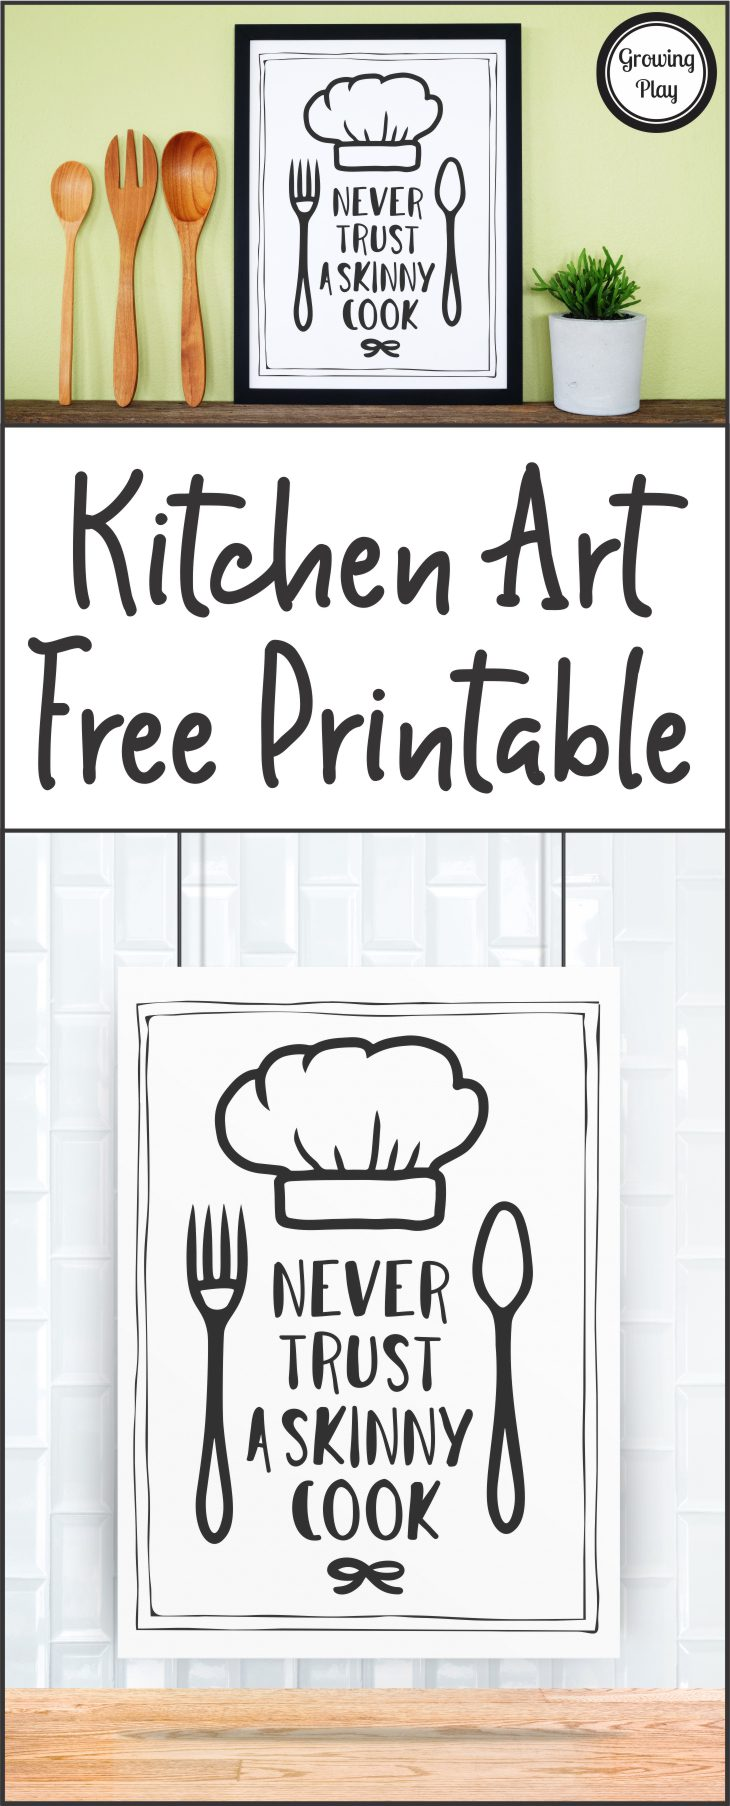 photo relating to Free Printable Kitchen Art identified as Enjoyment Kitchen area Artwork Freebie - Playtime inside of the Kitchen area - Developing Engage in